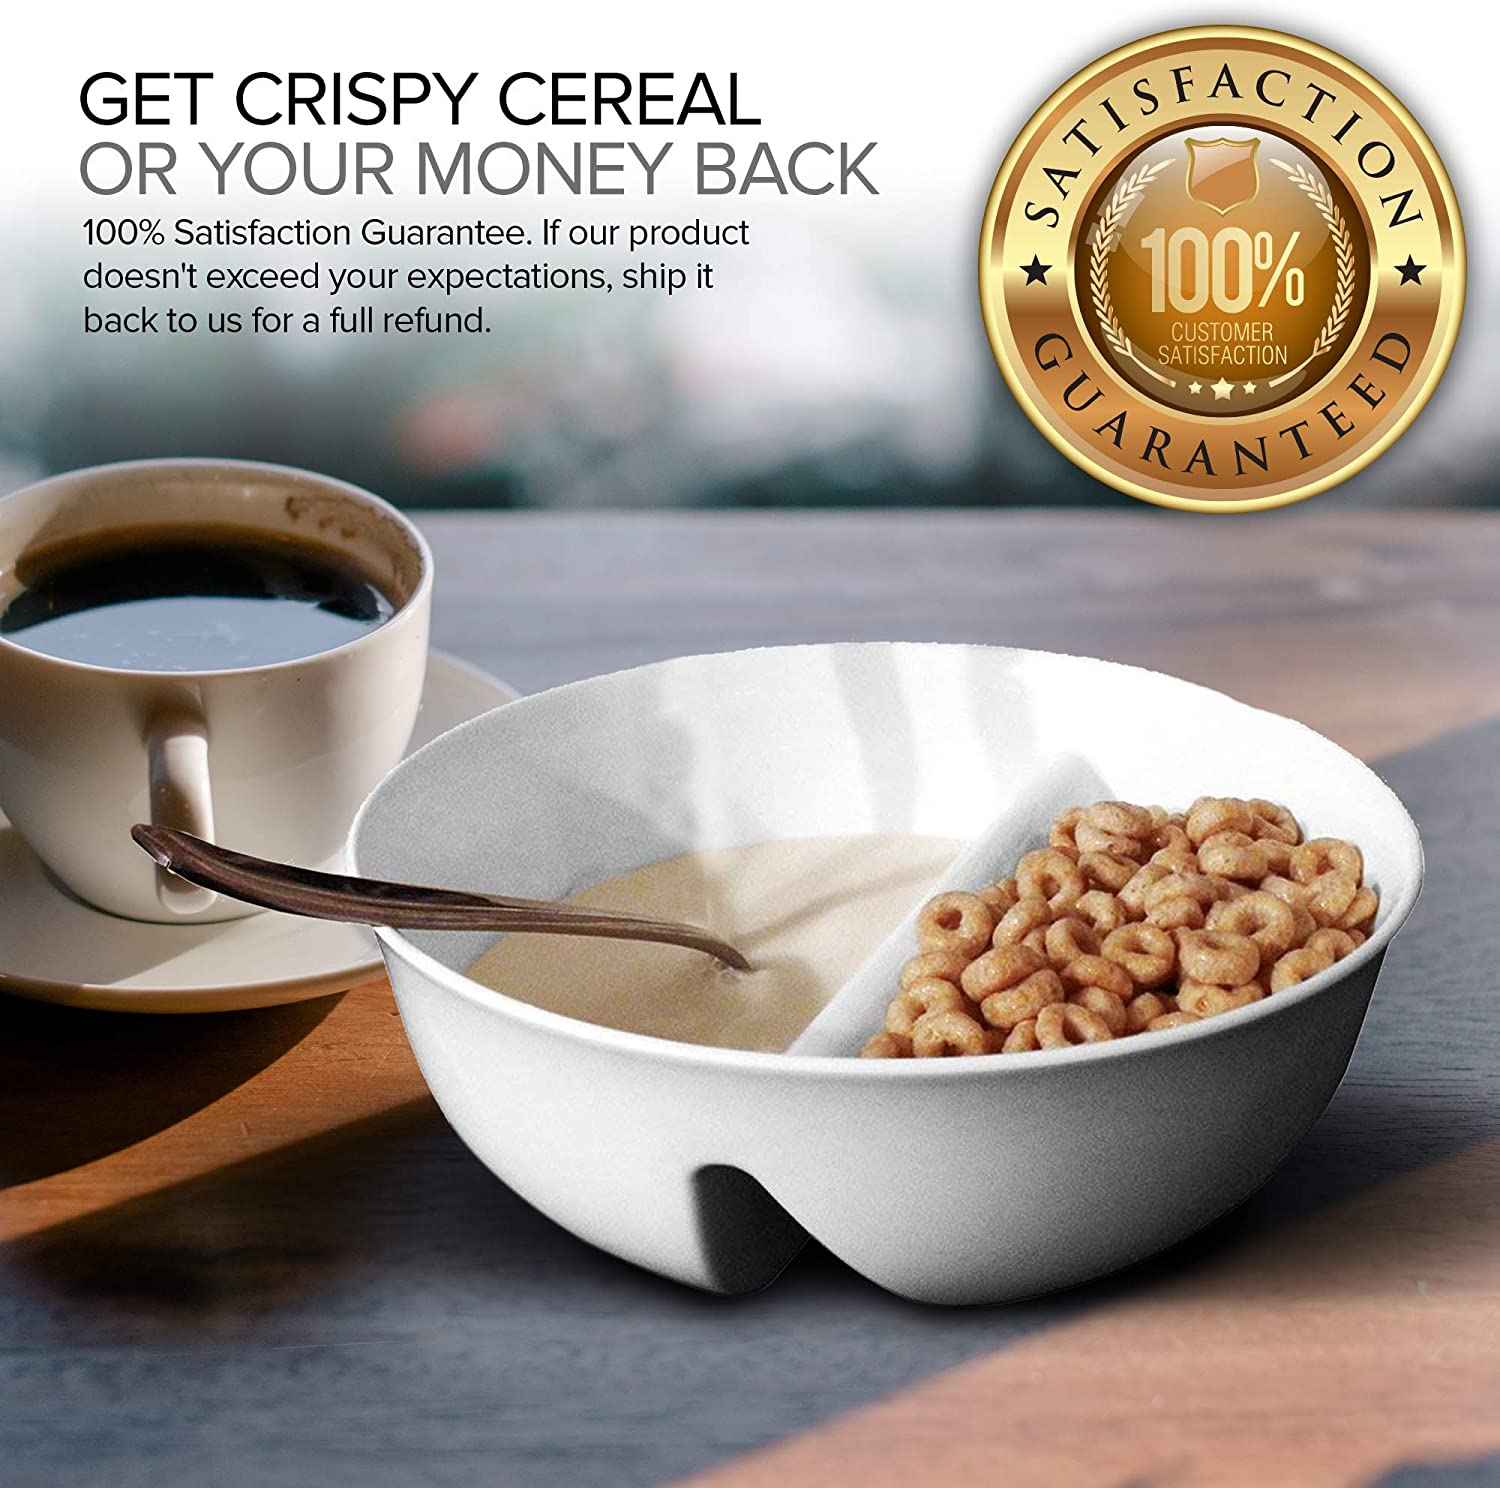   Just Crunch Anti-Soggy Cereal Bowl - Keeps Cereal Fresh & Crunchy   BPA Free   Microwave Safe   Ice Cream & Topping, Yogurt & Berries, Fries & Ketchup and More – White: Soup Cereal Bowls: Cereal Bowls